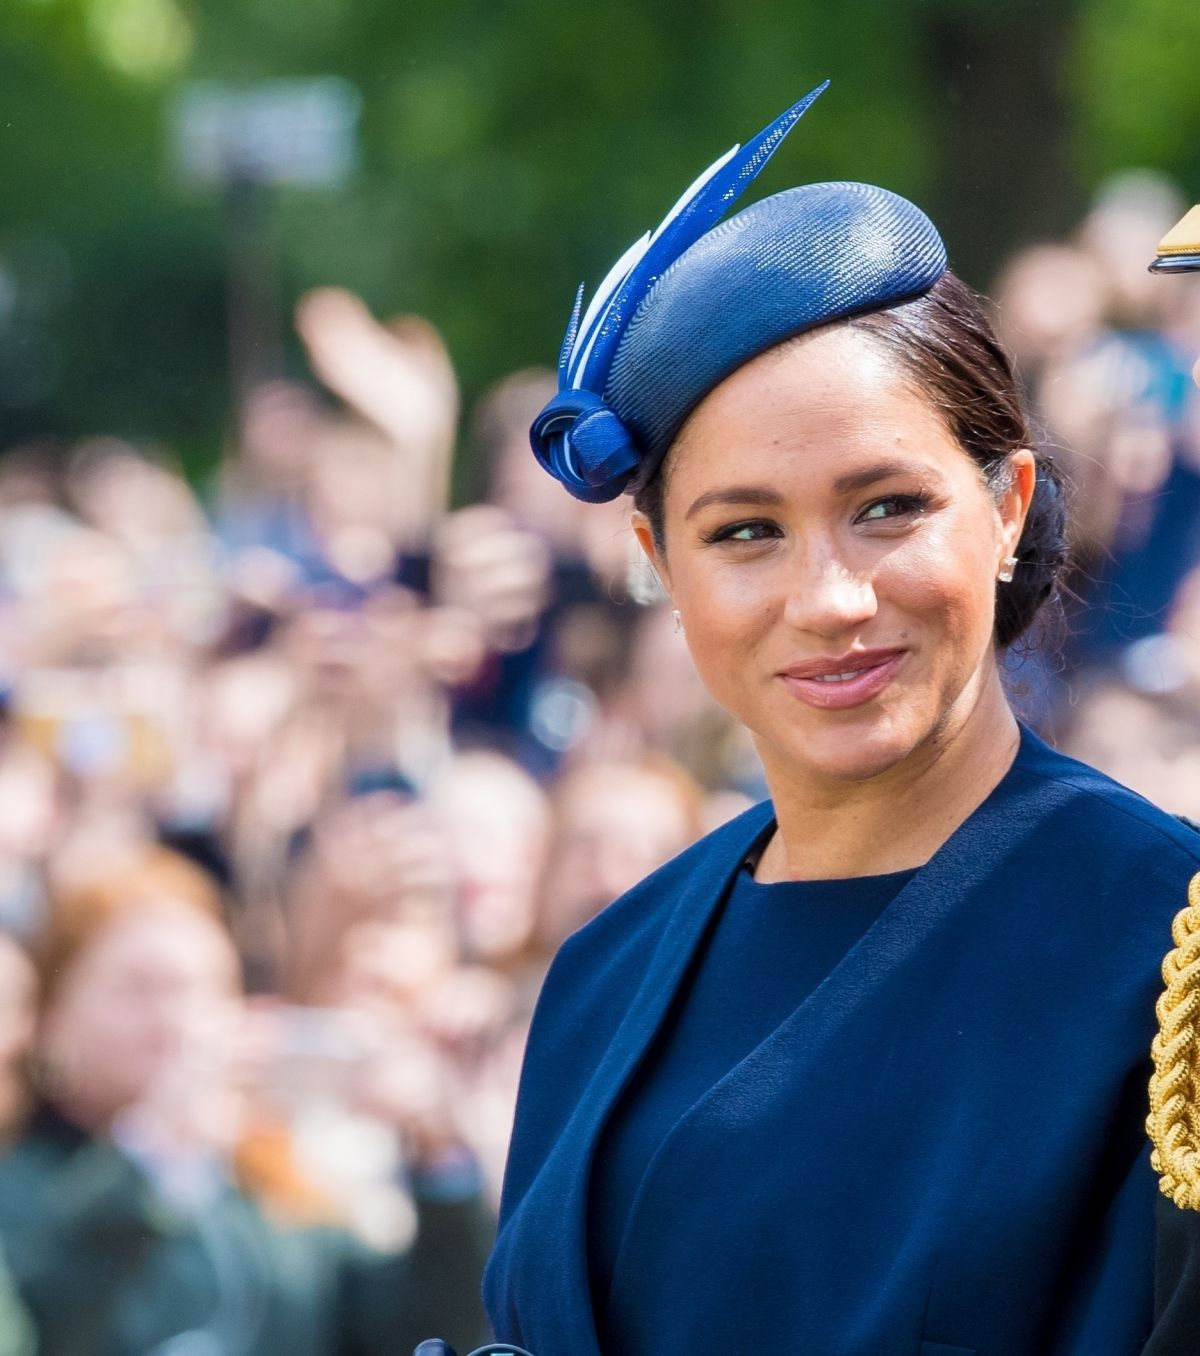 MEGHAN MARKLE At Trooping The Colour Ceremony In London 06